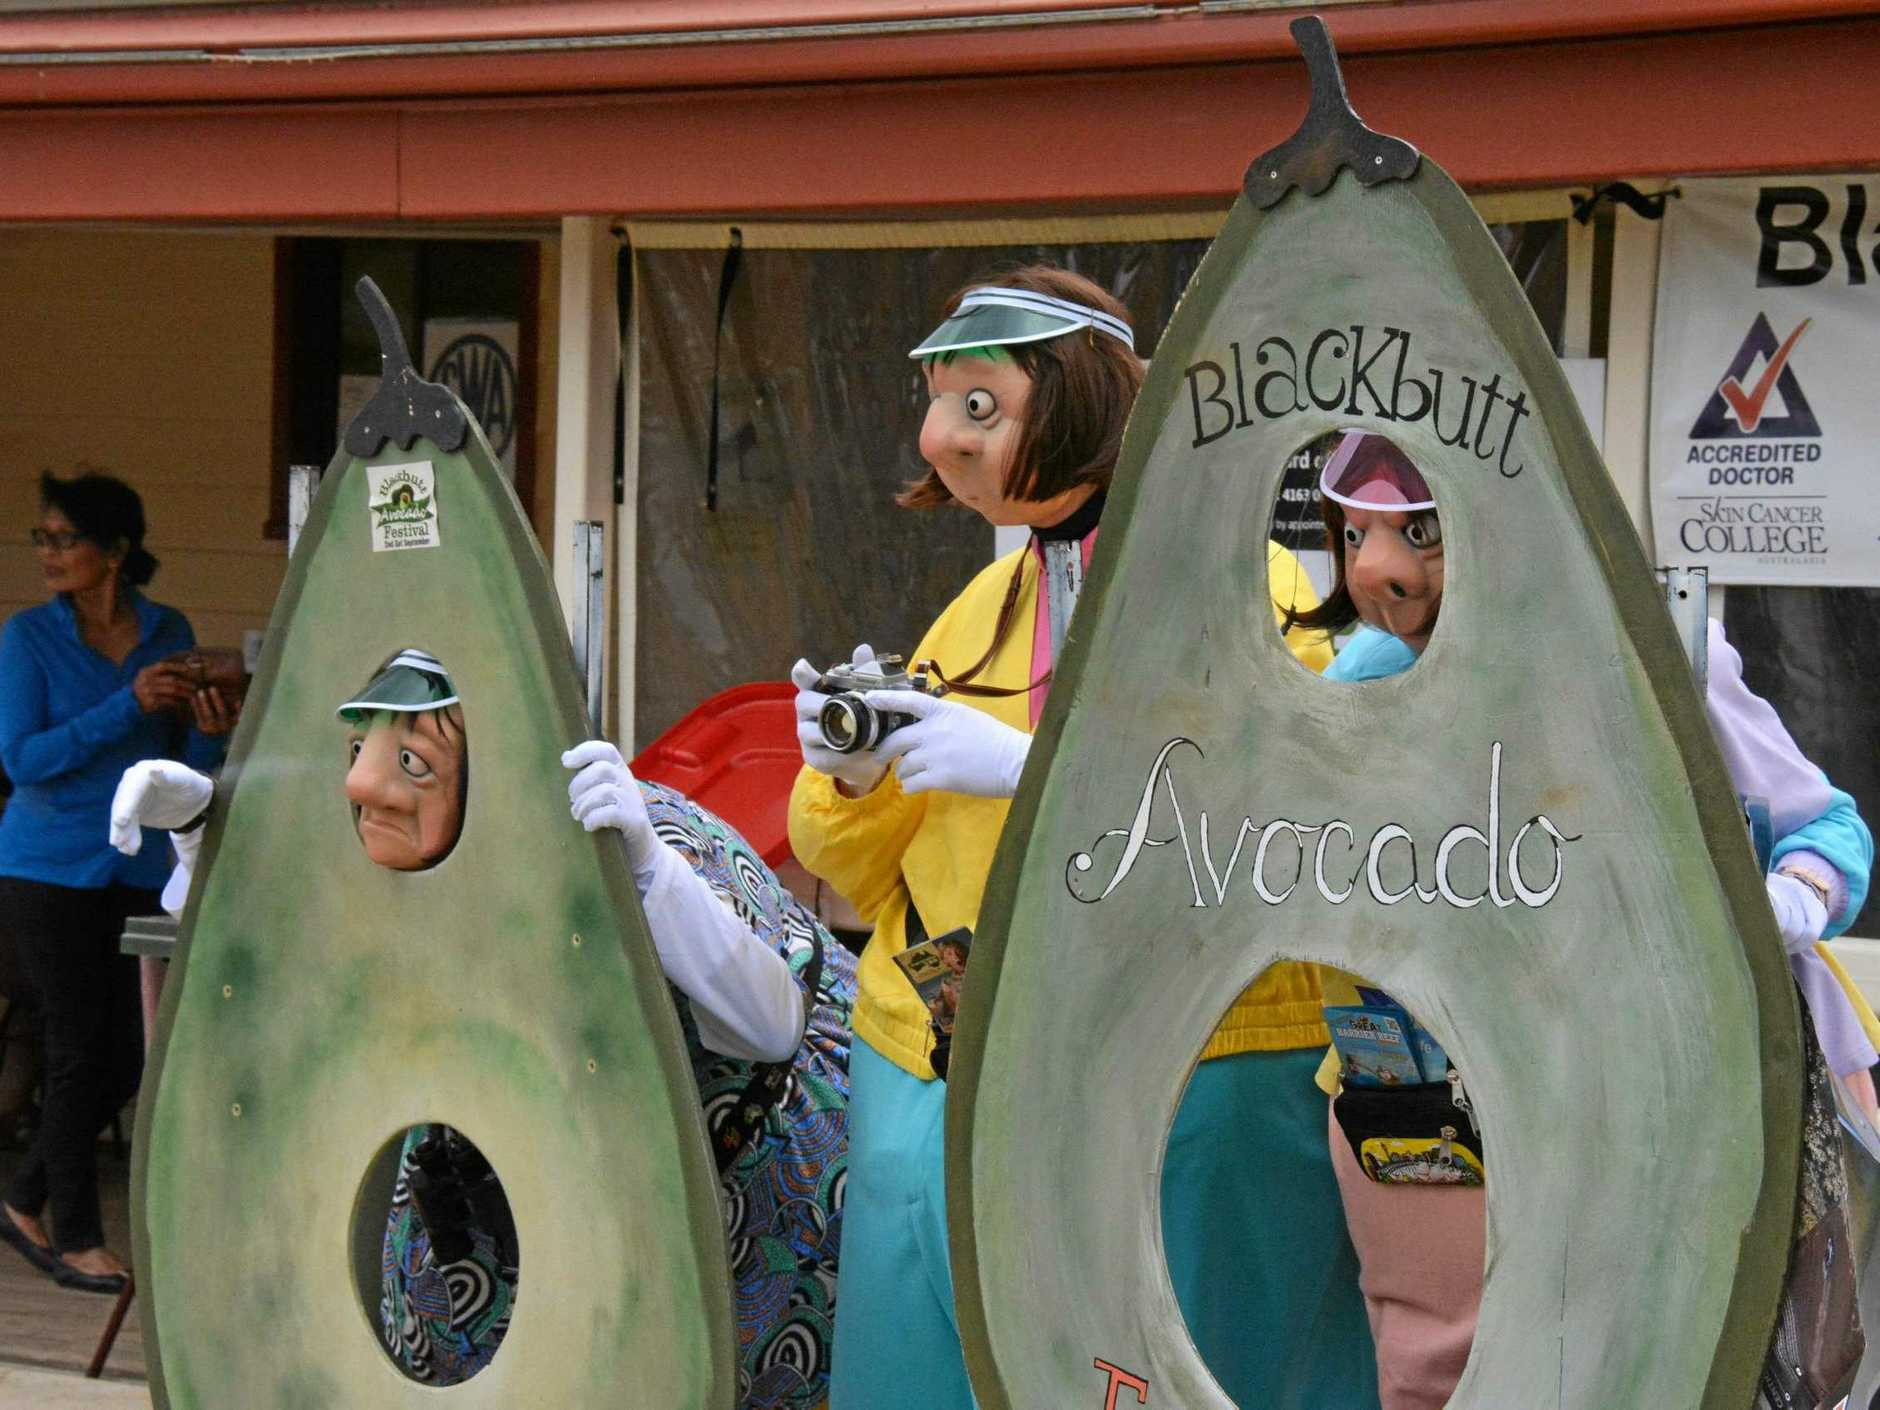 Look out for all of the avocado costumes at this year's Blackbutt Avocado Festival.